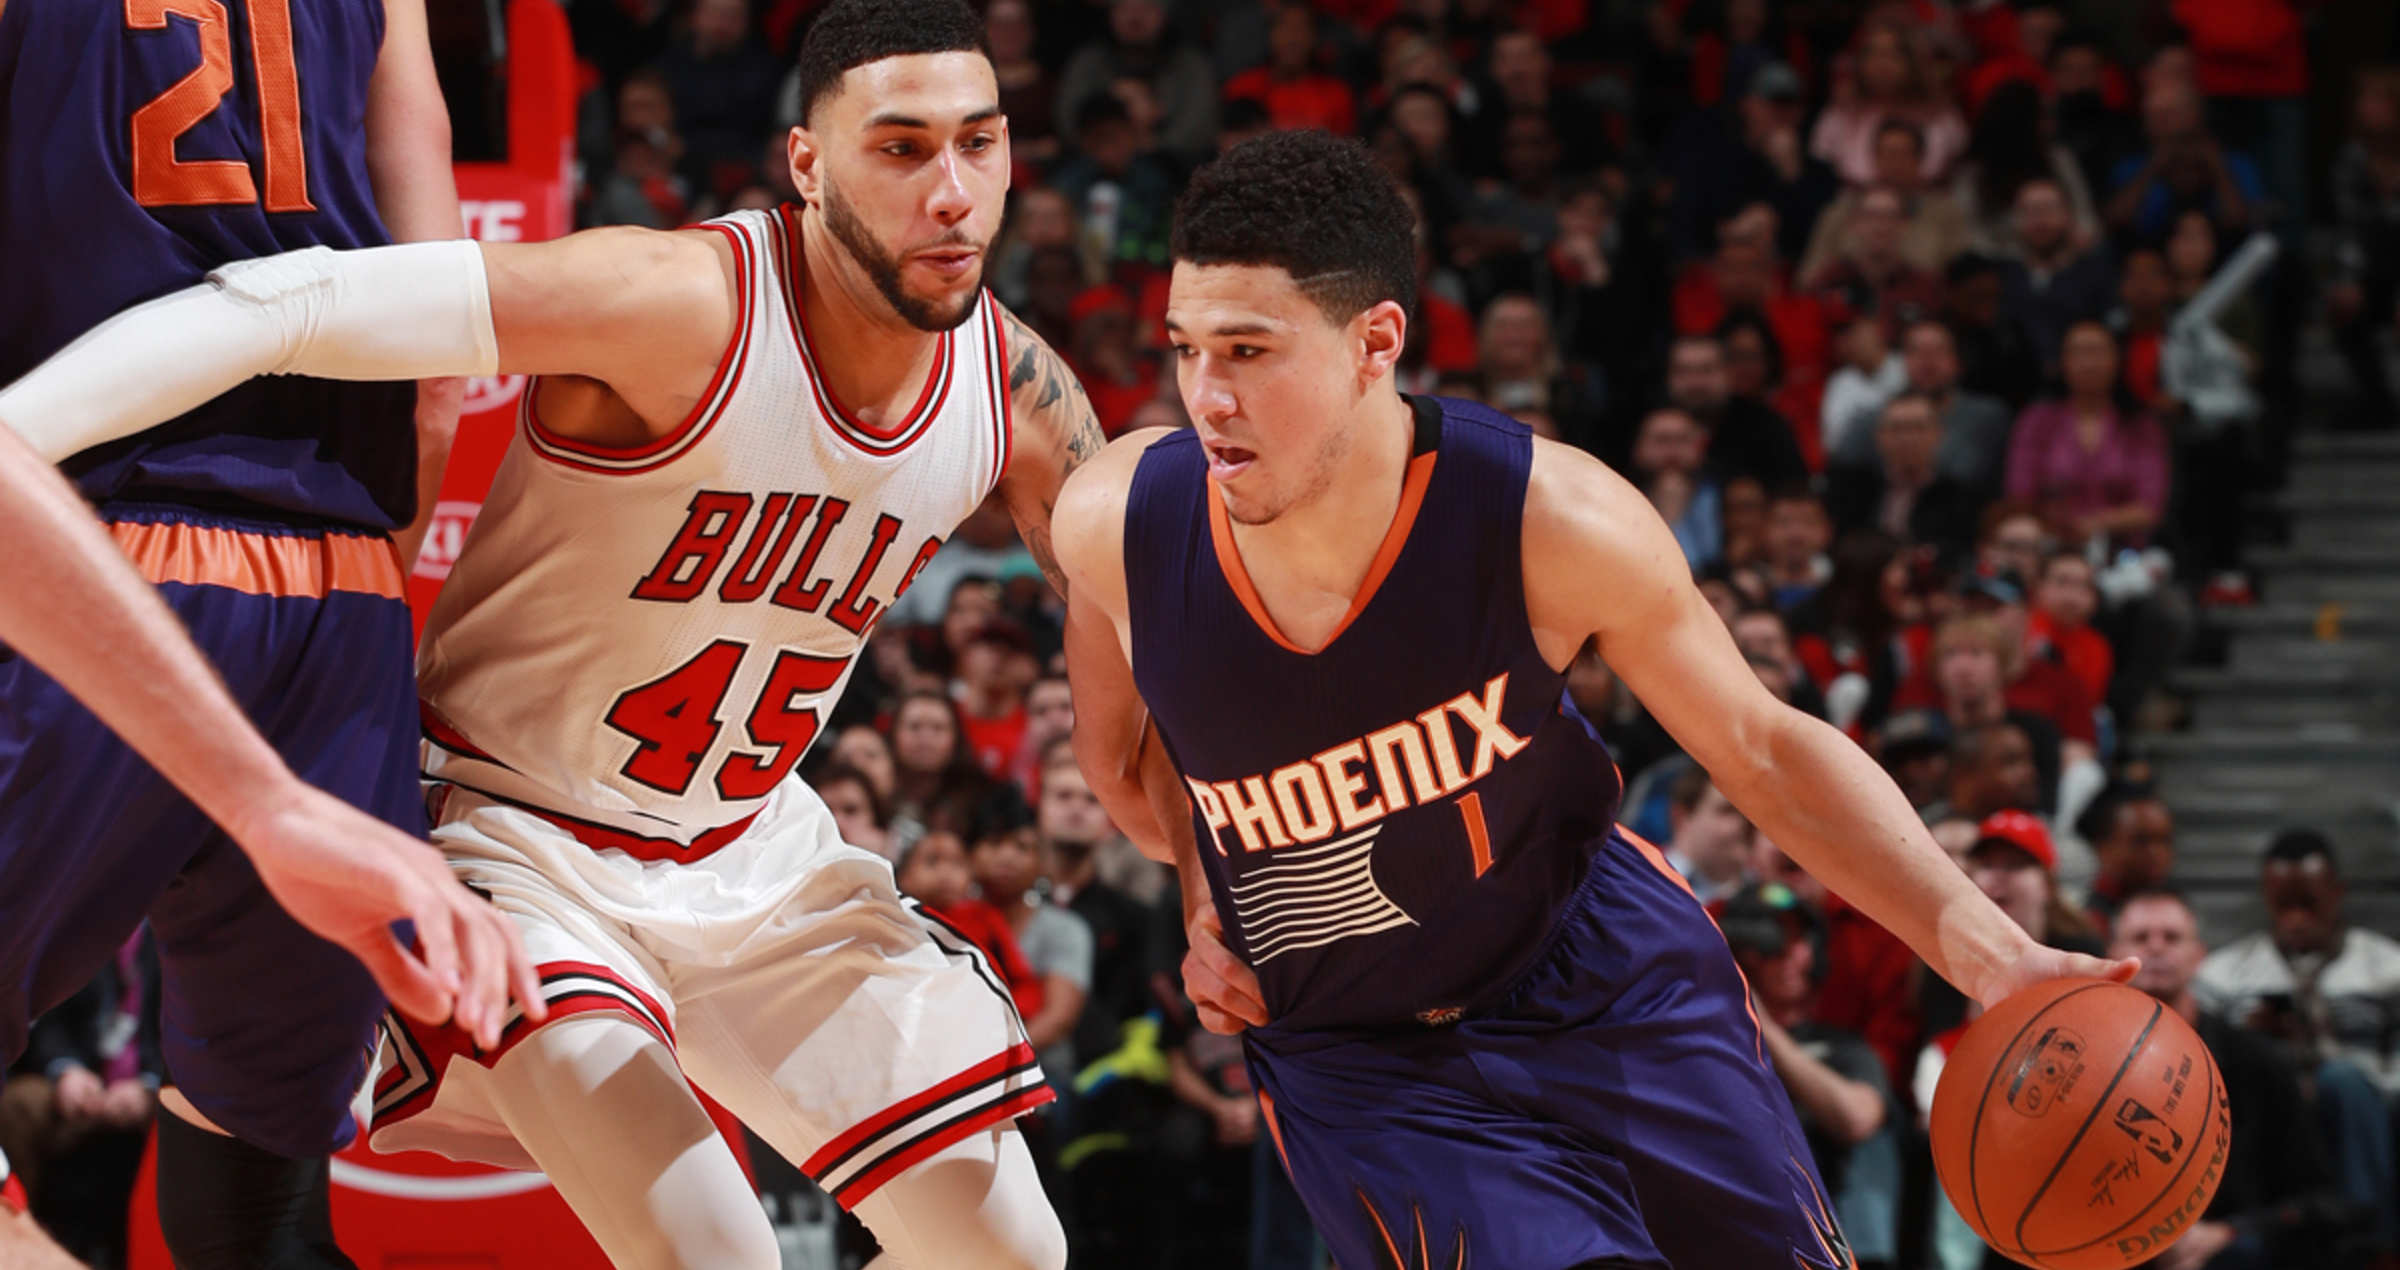 FEBRUARY 24: Devin Booker #1 of the Phoenix Suns drives to the basket against Denzel Valentine #45 of the Chicago Bulls during the game on February 24, 2017 at the United Center in Chicago, Illinois.